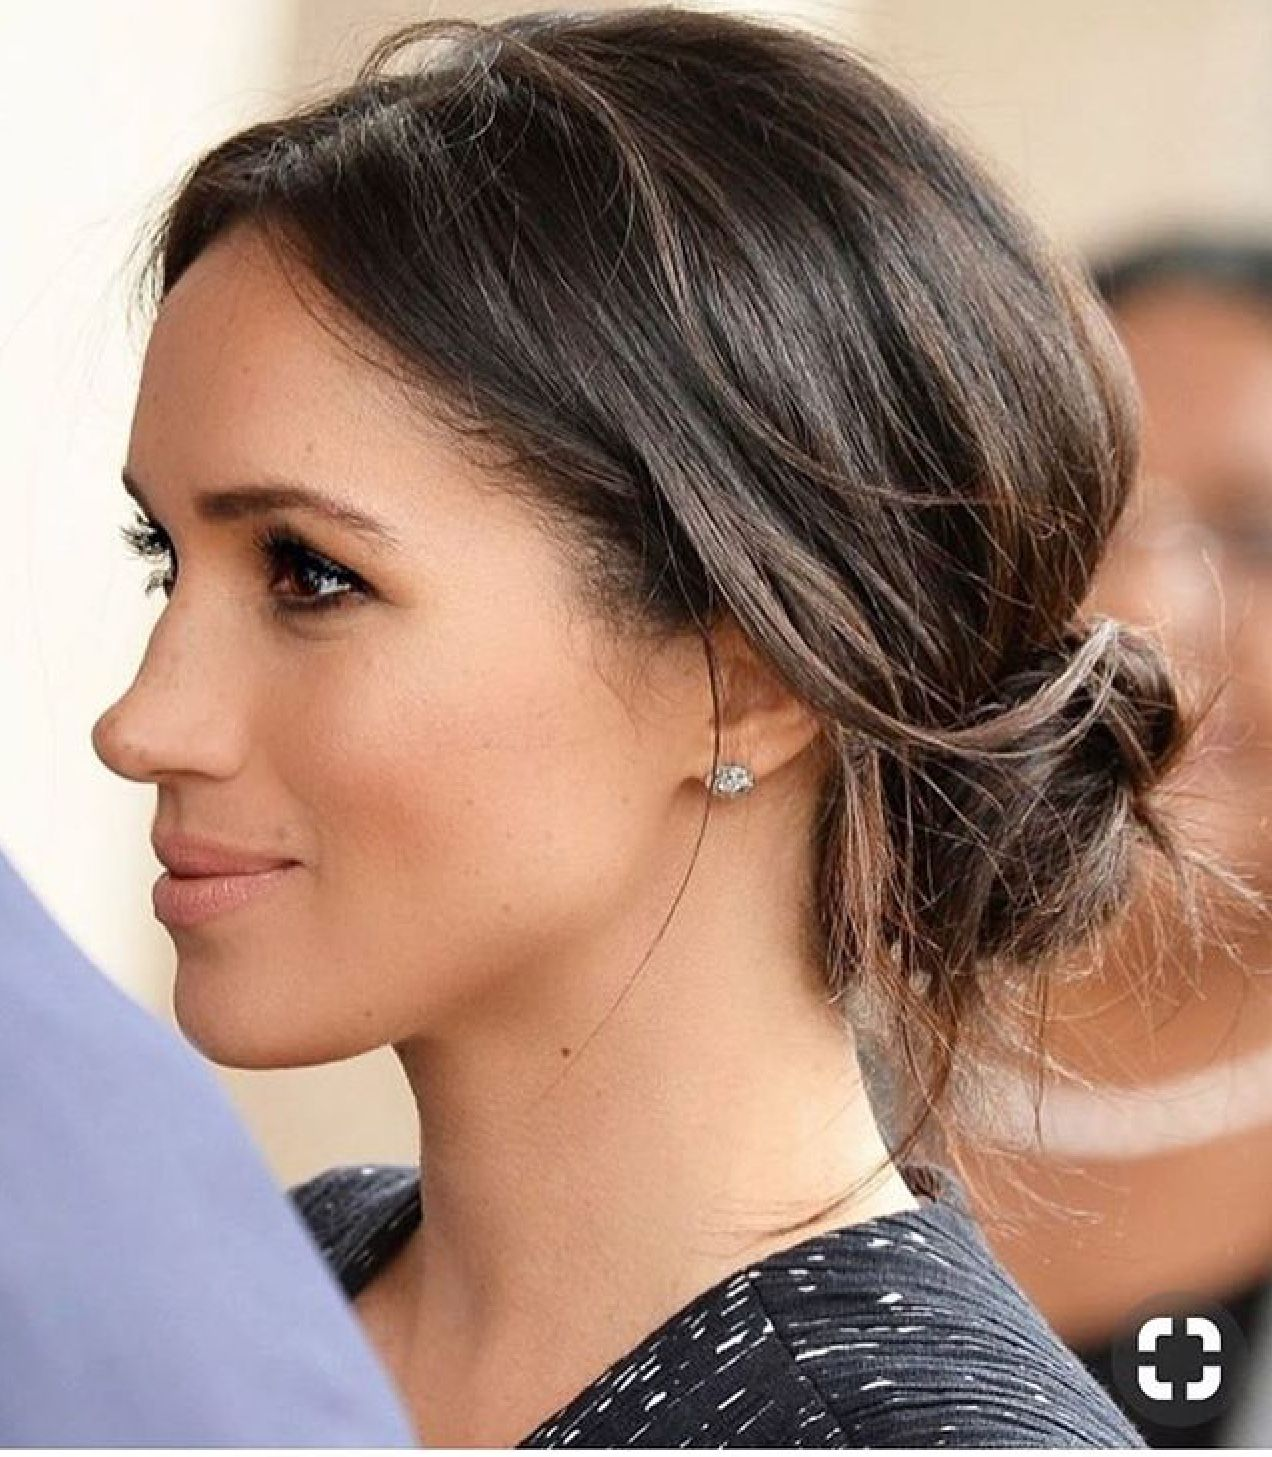 Photo of The Duchess of Sussex Meghan